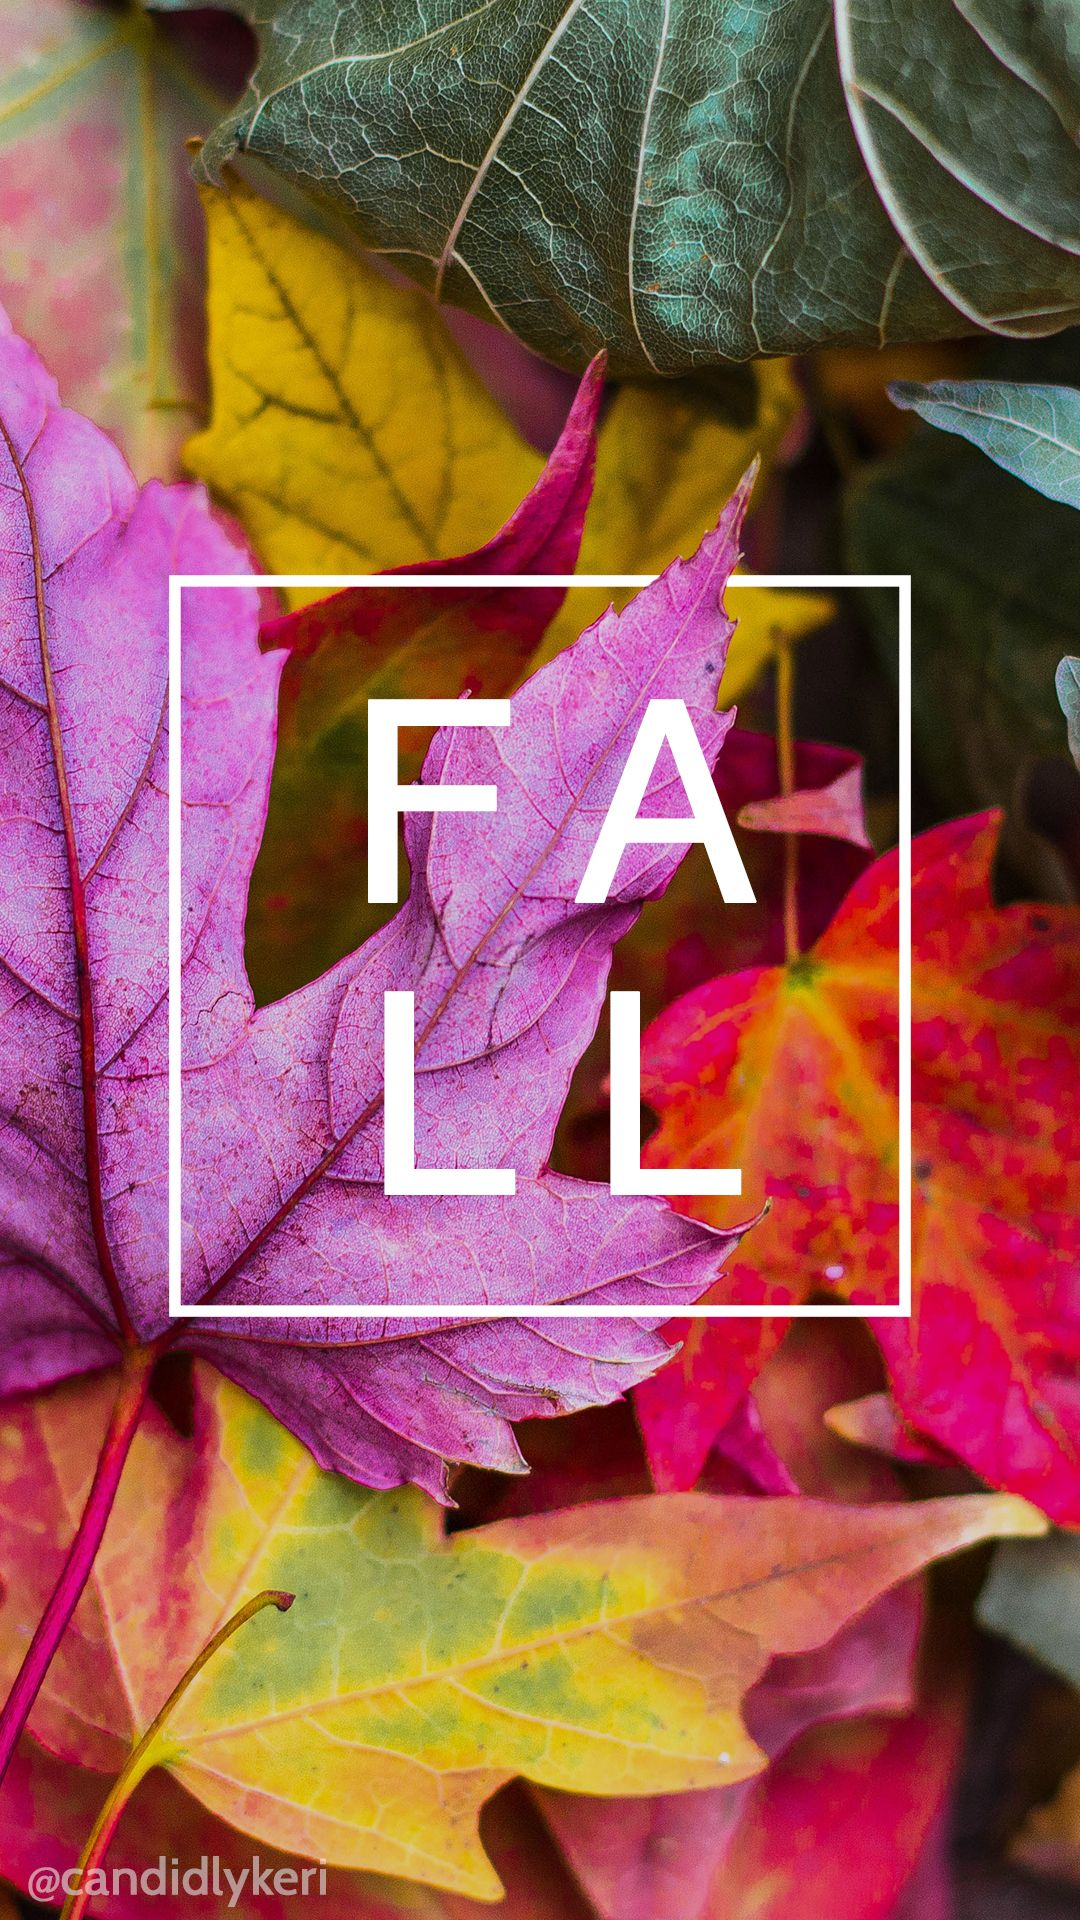 Fall Leaf Leaves Colorful Nature Wallpaper You Can Download For Free On The Blog Any Device Mobile Desktop Iphone Android